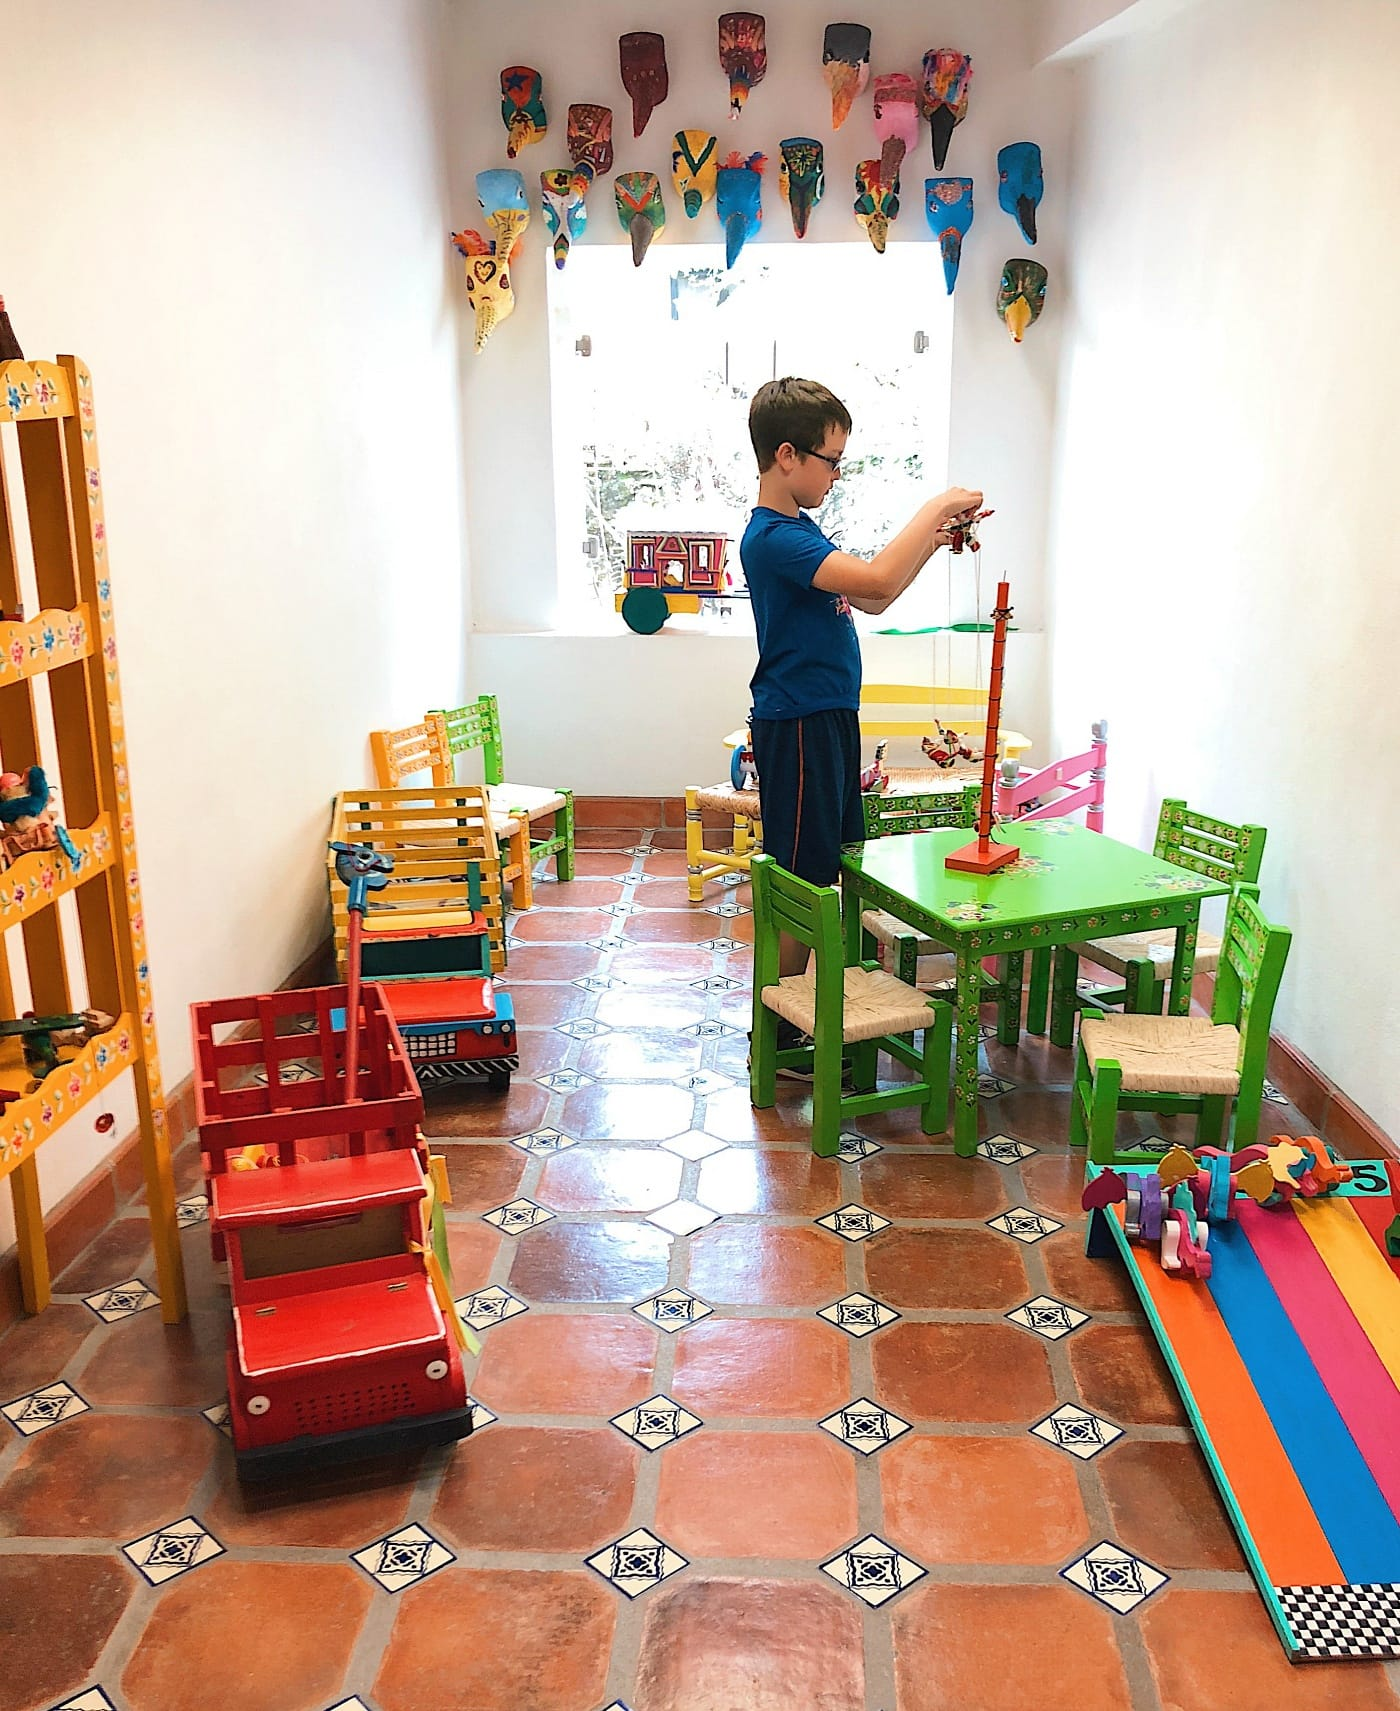 The play room at La Esquina Museo del Juguete Popular Mexicano was my kids' favorite part!